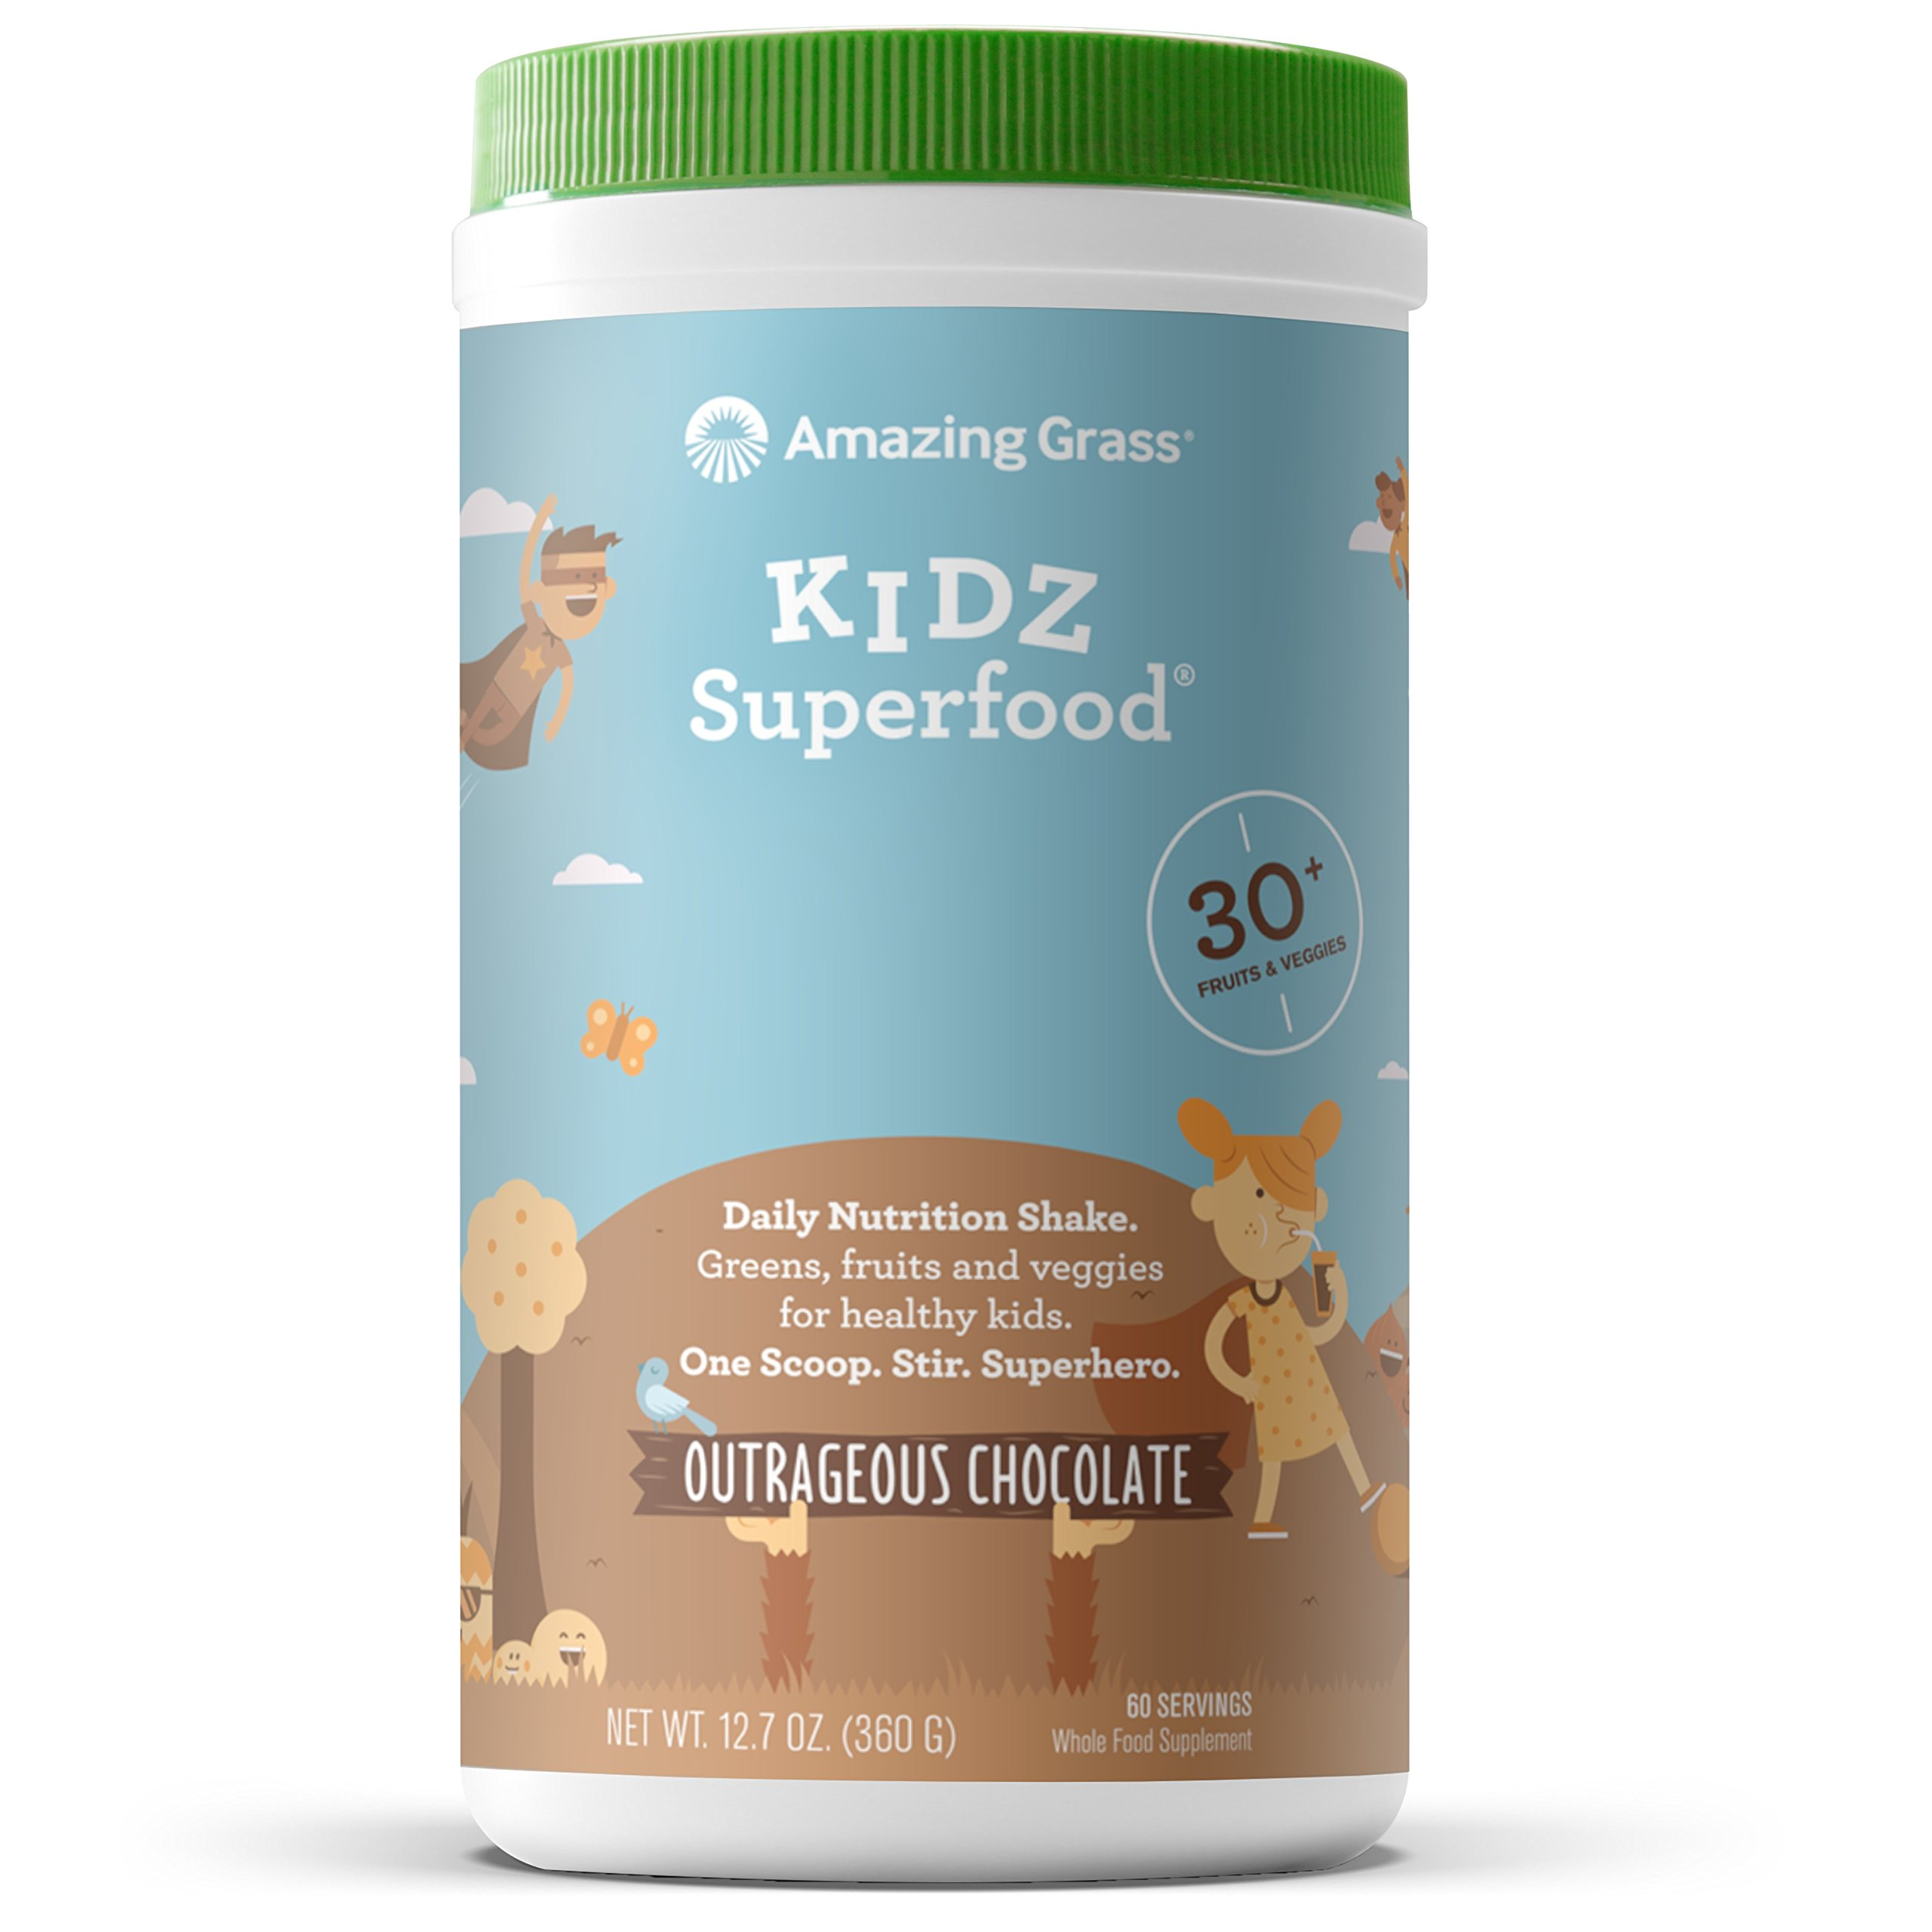 Amazing Grass, Organic Vegan Kidz Superfood Powder with Greens, Flavor: Outrageous Chocolate, 60 Servings